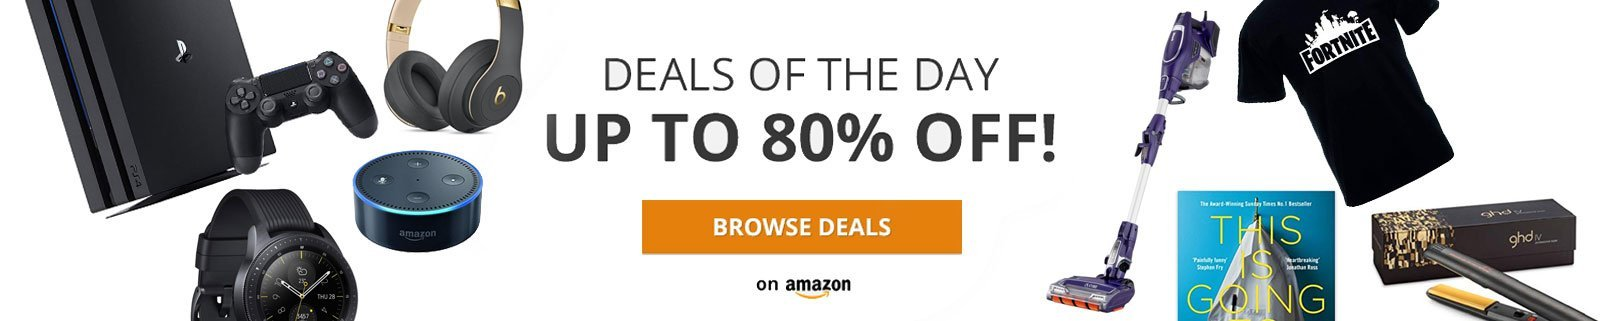 Deals of the Day - Lightning Deals - Today's Deals